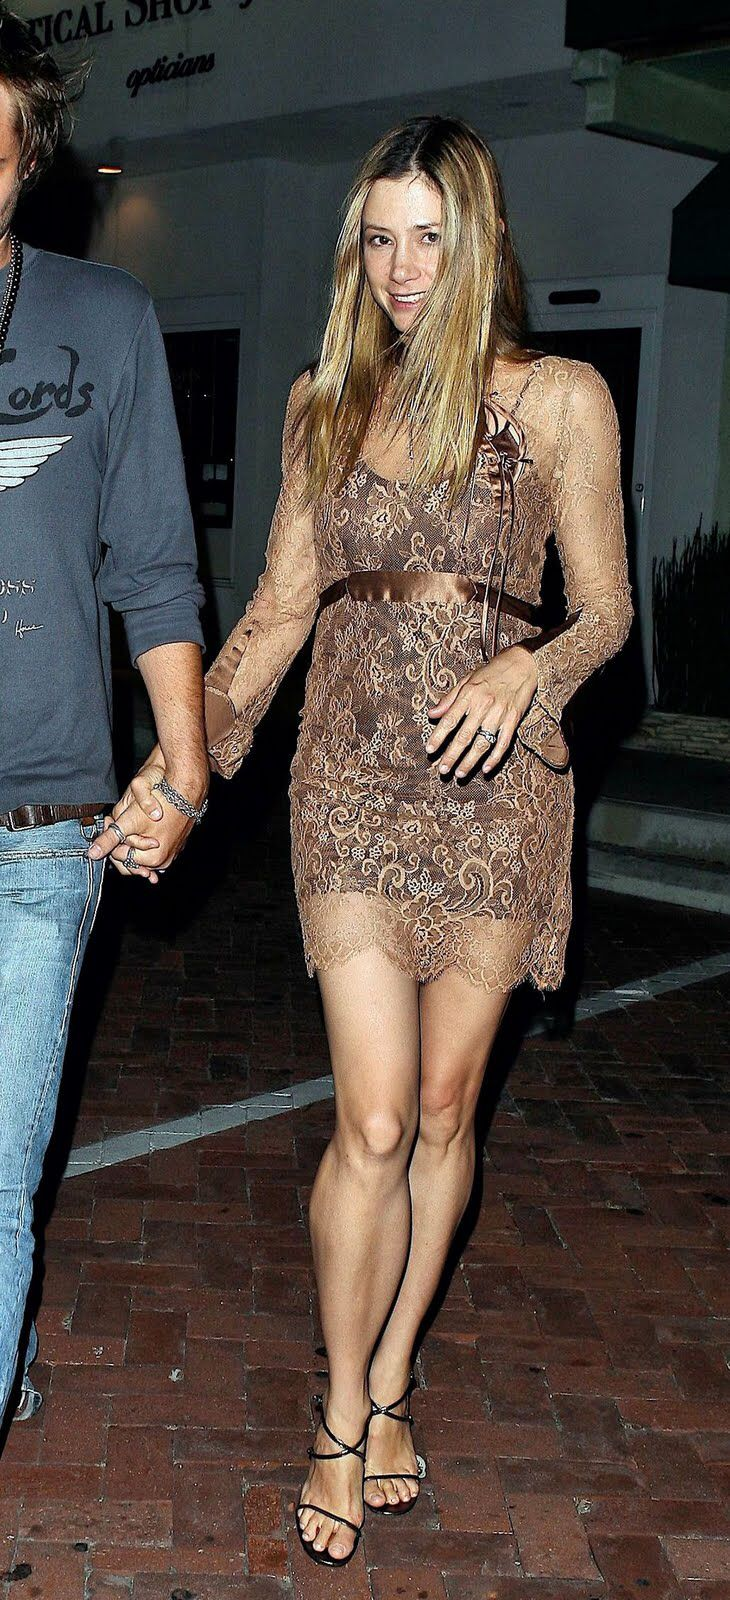 Pin By Anti Aguila On Mira Mira Sorvino Her Calves Calves